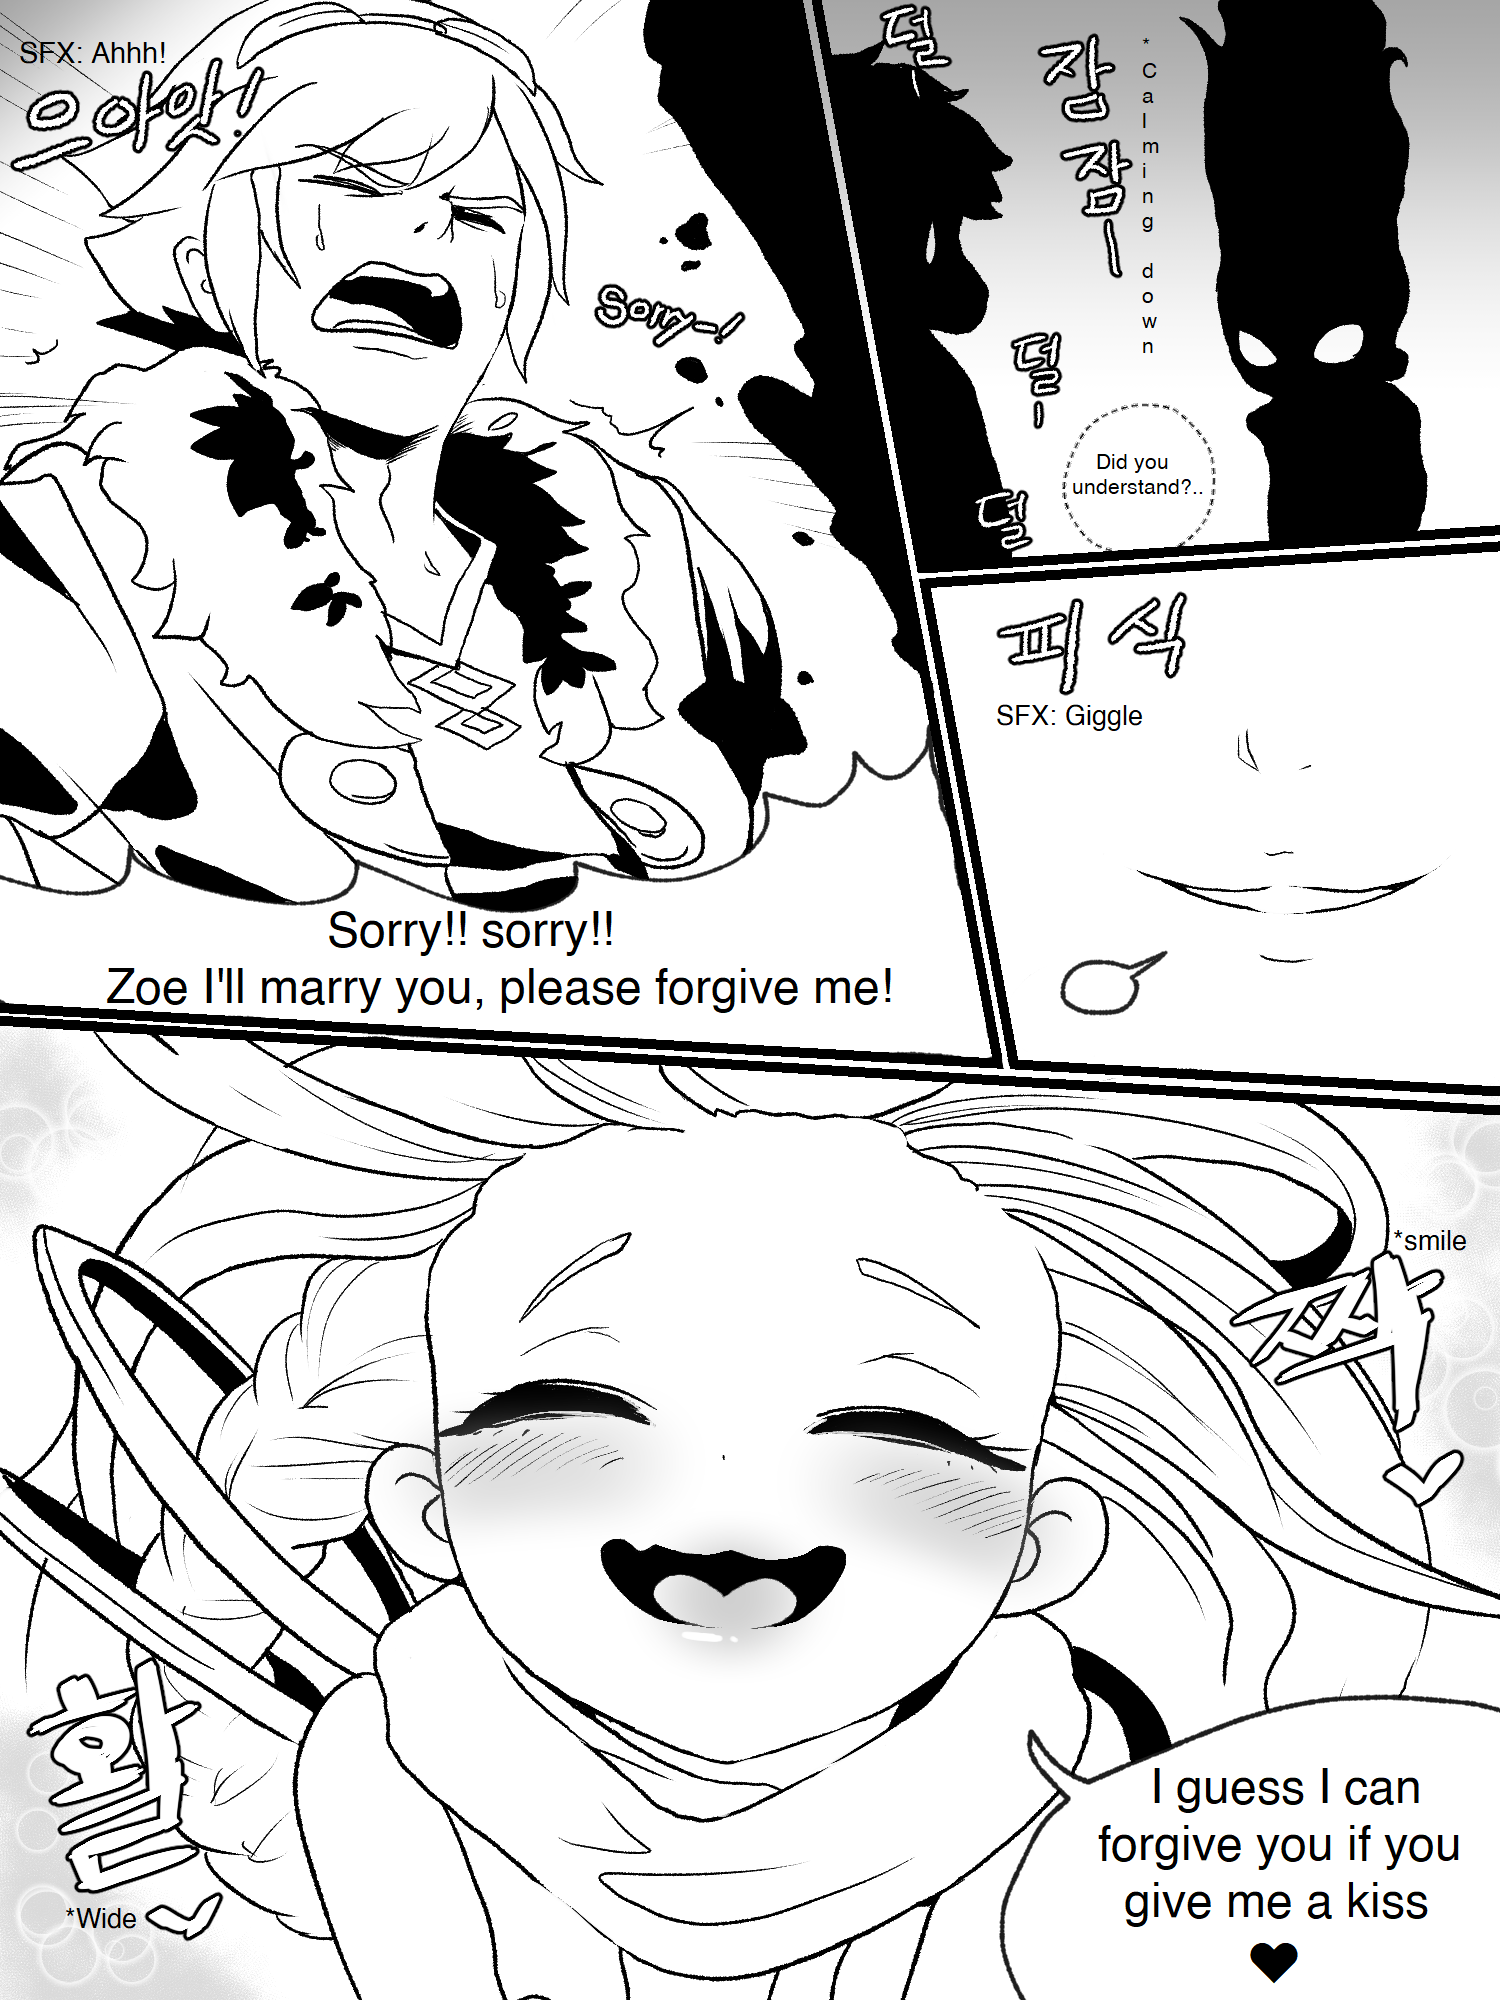 [ENG - DOUJIN] Kim Toxic ~ The Reality In The Starlight (Decensored) Hentai